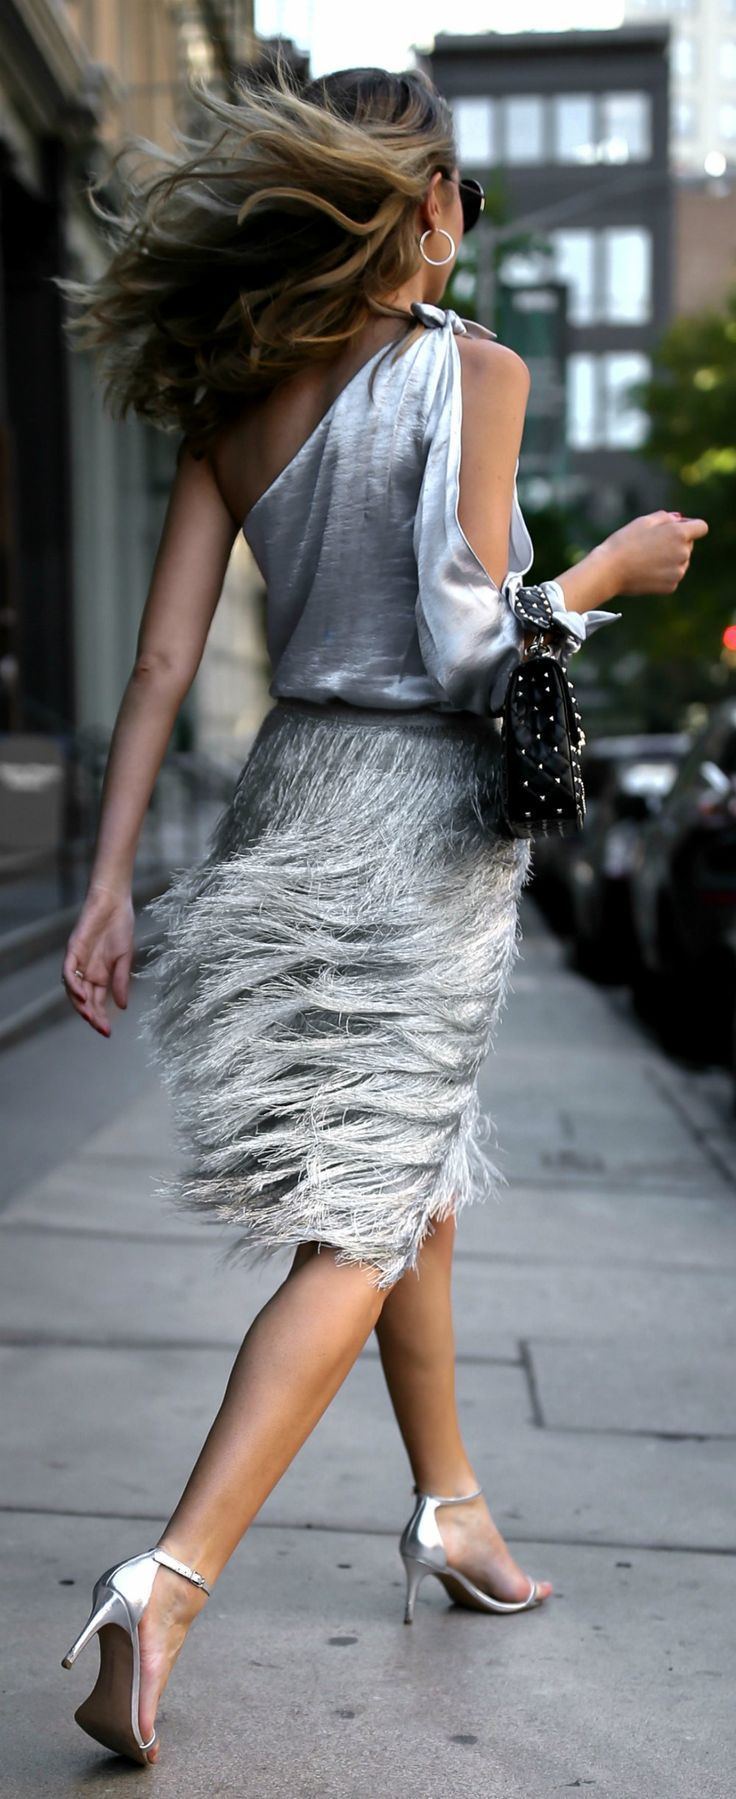 TREND MEMO: Metallics + Sparkle //  One shoulder metallic blouse, metallic fringed midi skirt, studded black leather shoulder bag, round sunglasses and silver ankle-strap sandals {Valentino, Rachel Zoe, Rebecca Minkoff, Sunday Somewhere, Sam Edelman, fall trends, fall winter trends 2017, fashion trends, classy dressing, statement dressing, fringe, metallic}